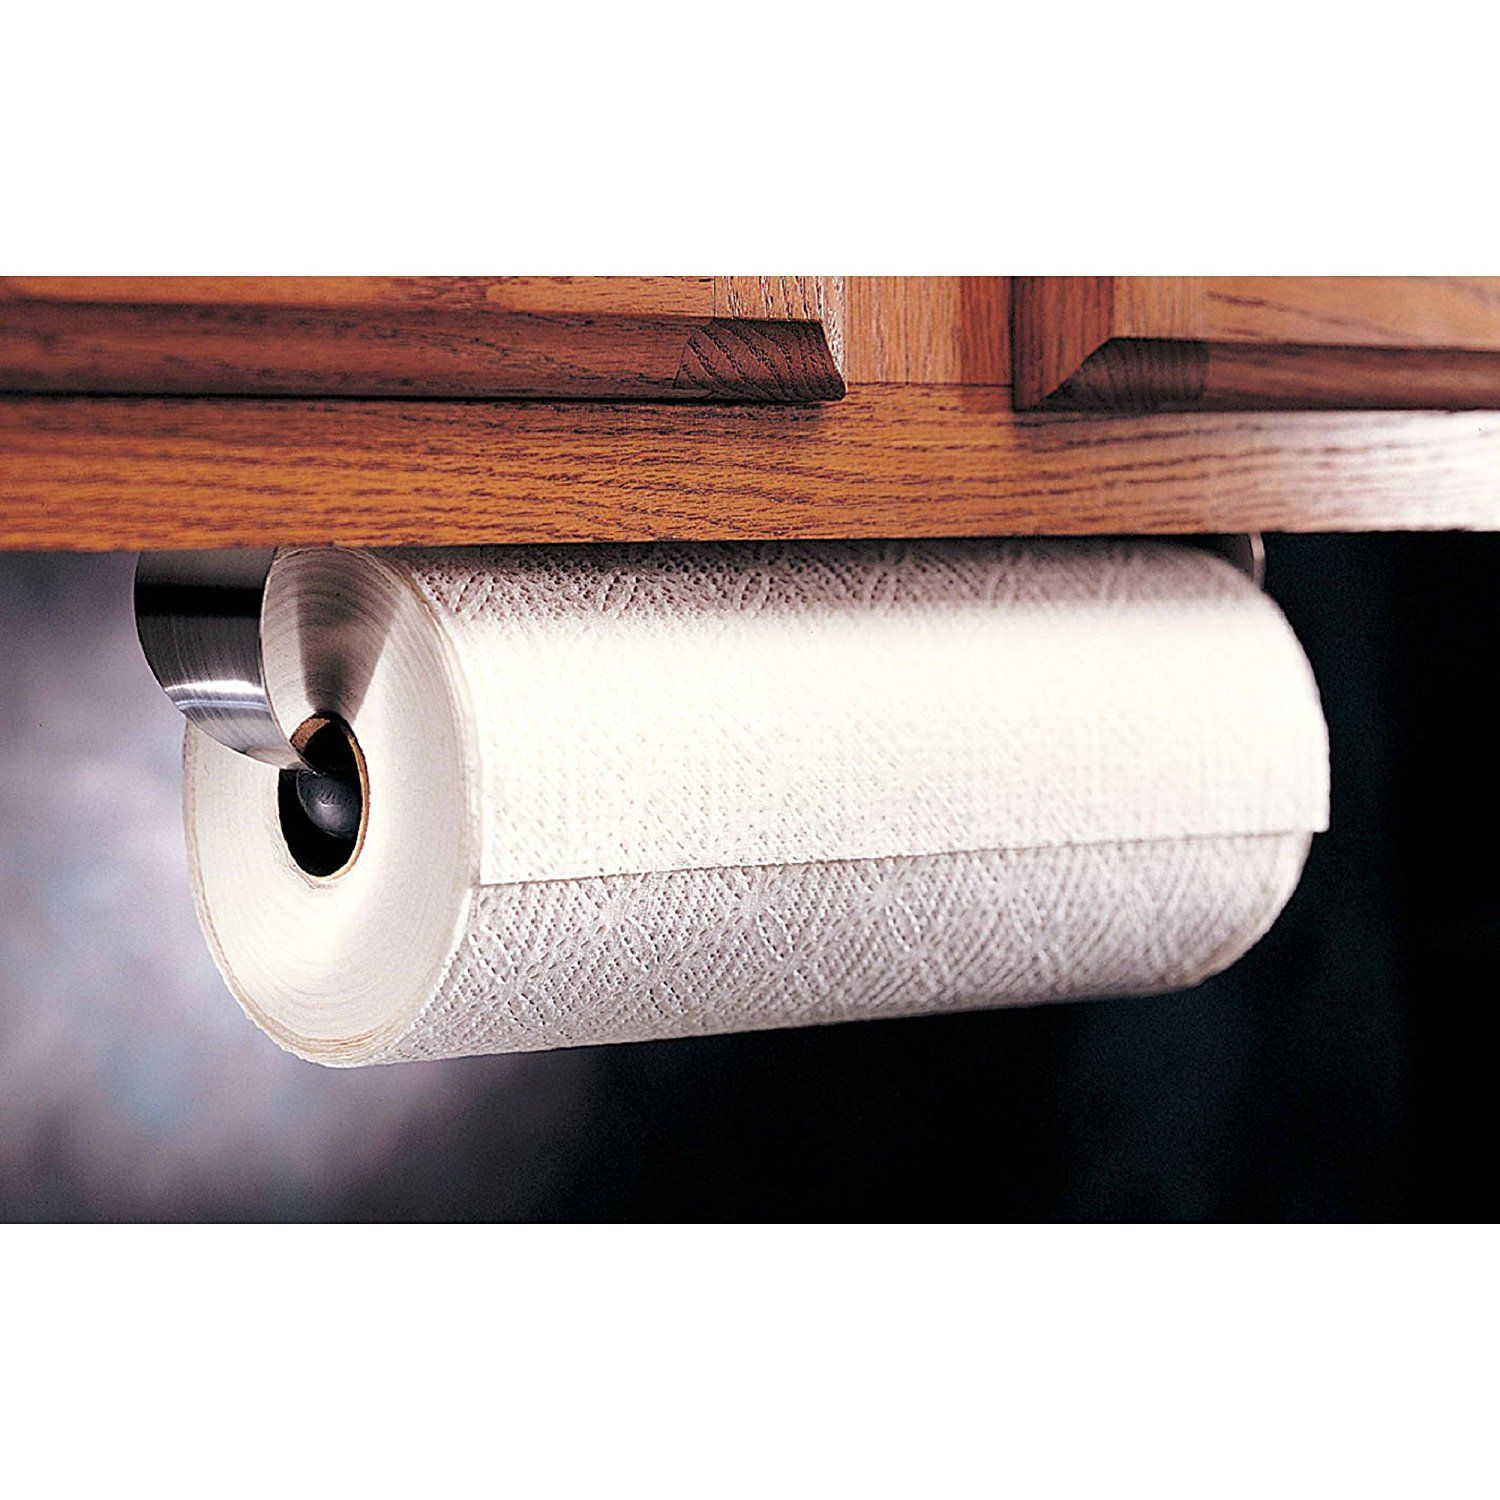 Under The Cabinet Paper Towel Holder Stunning Amazon Prodyne M913 Stainless Steel Under Cabinet Paper Towel Design Ideas